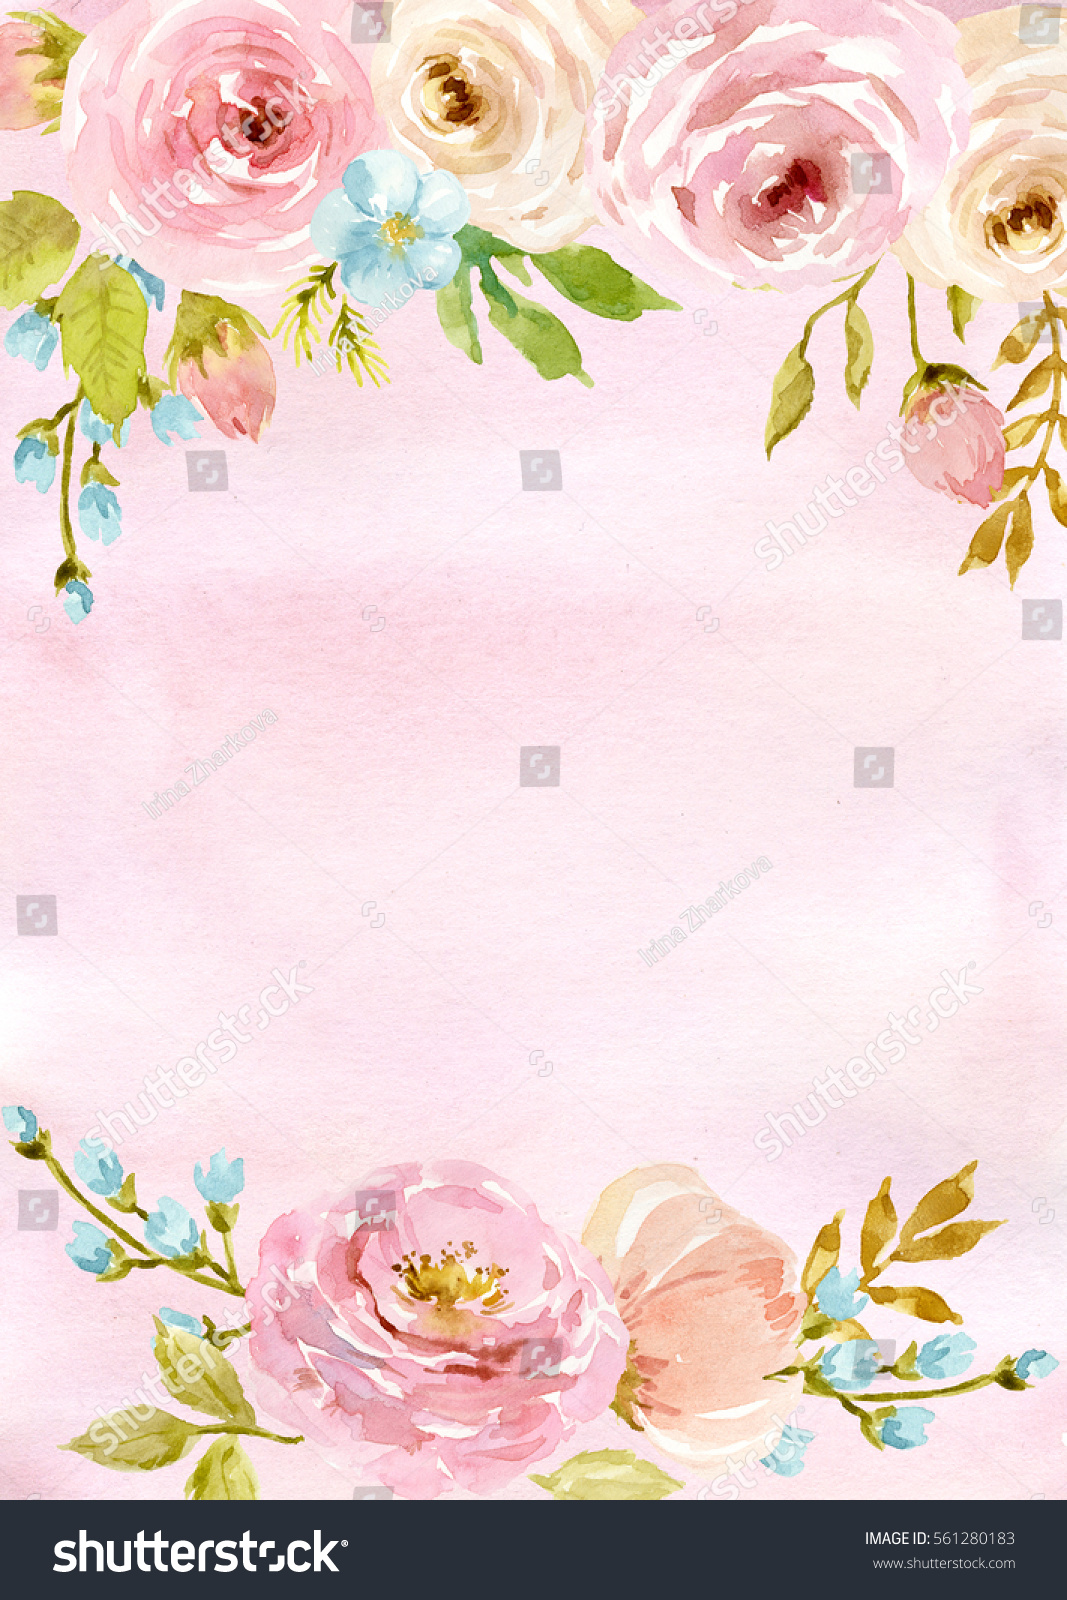 Finest Painted Watercolor Composition Flowers Pastel Colors Stock  AW98